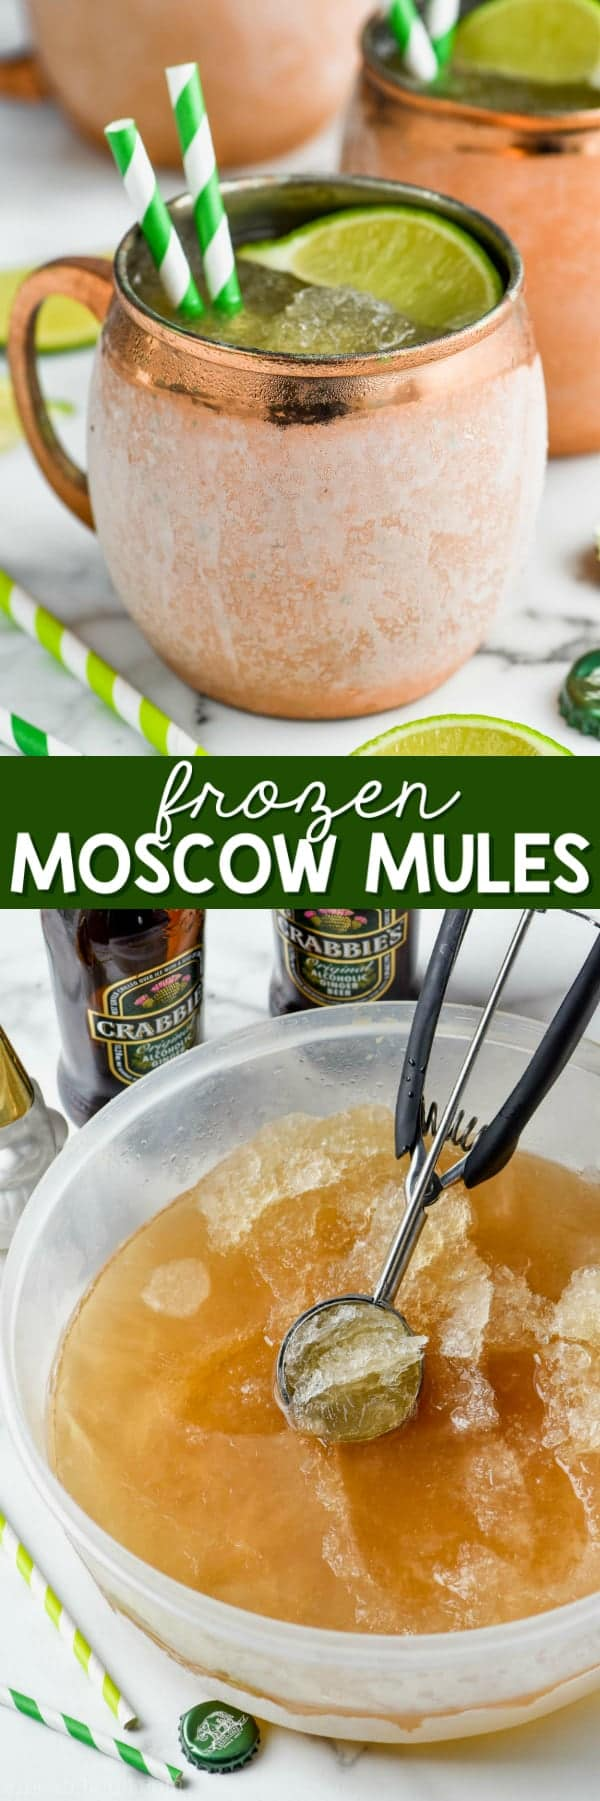 frosty copper mug of frozen moscow mule